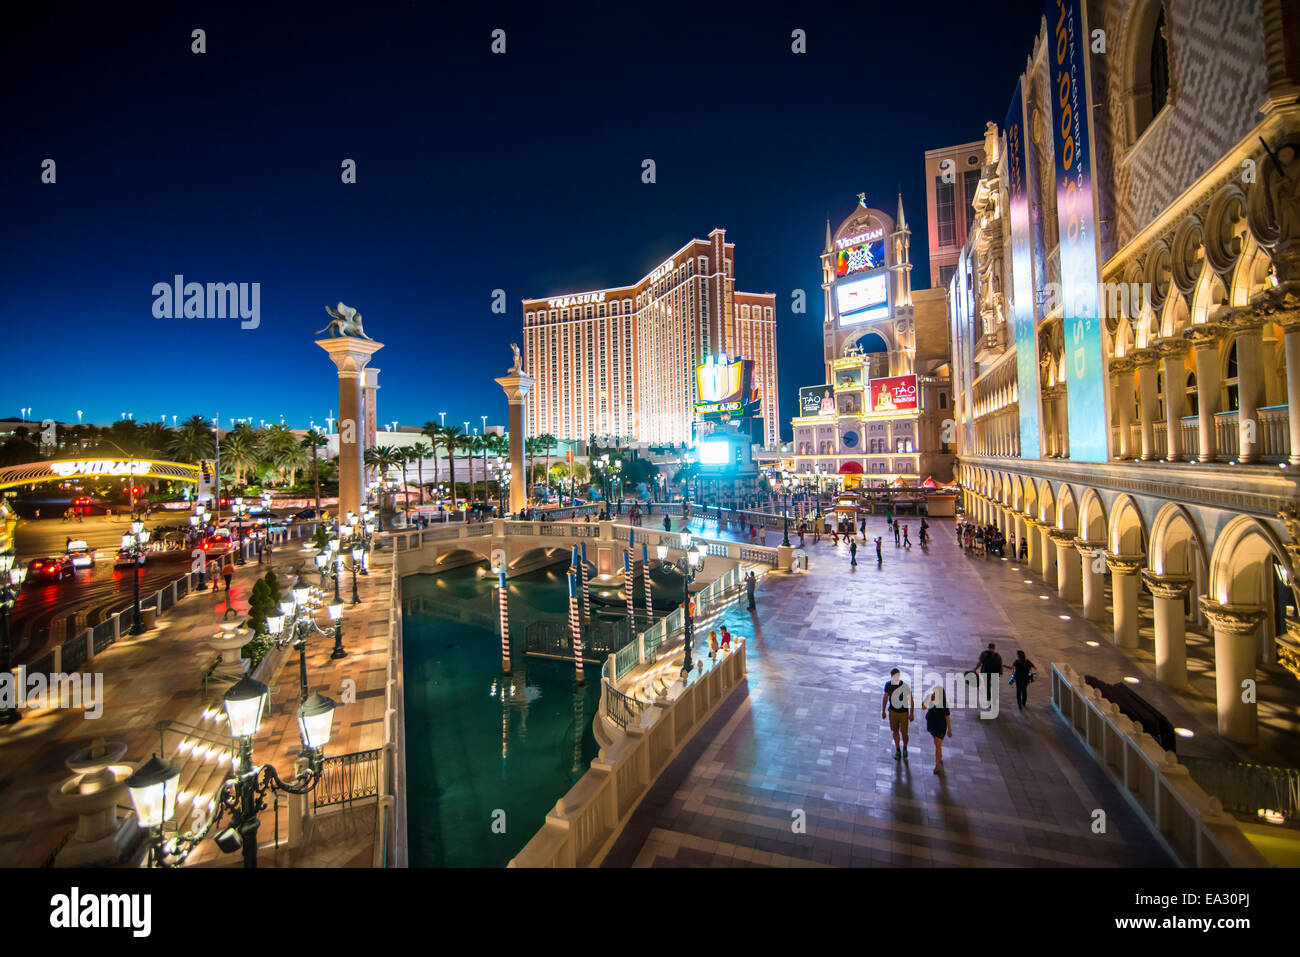 The Venetian at night, Las Vegas, Nevada, United States of America, North America - Stock Image